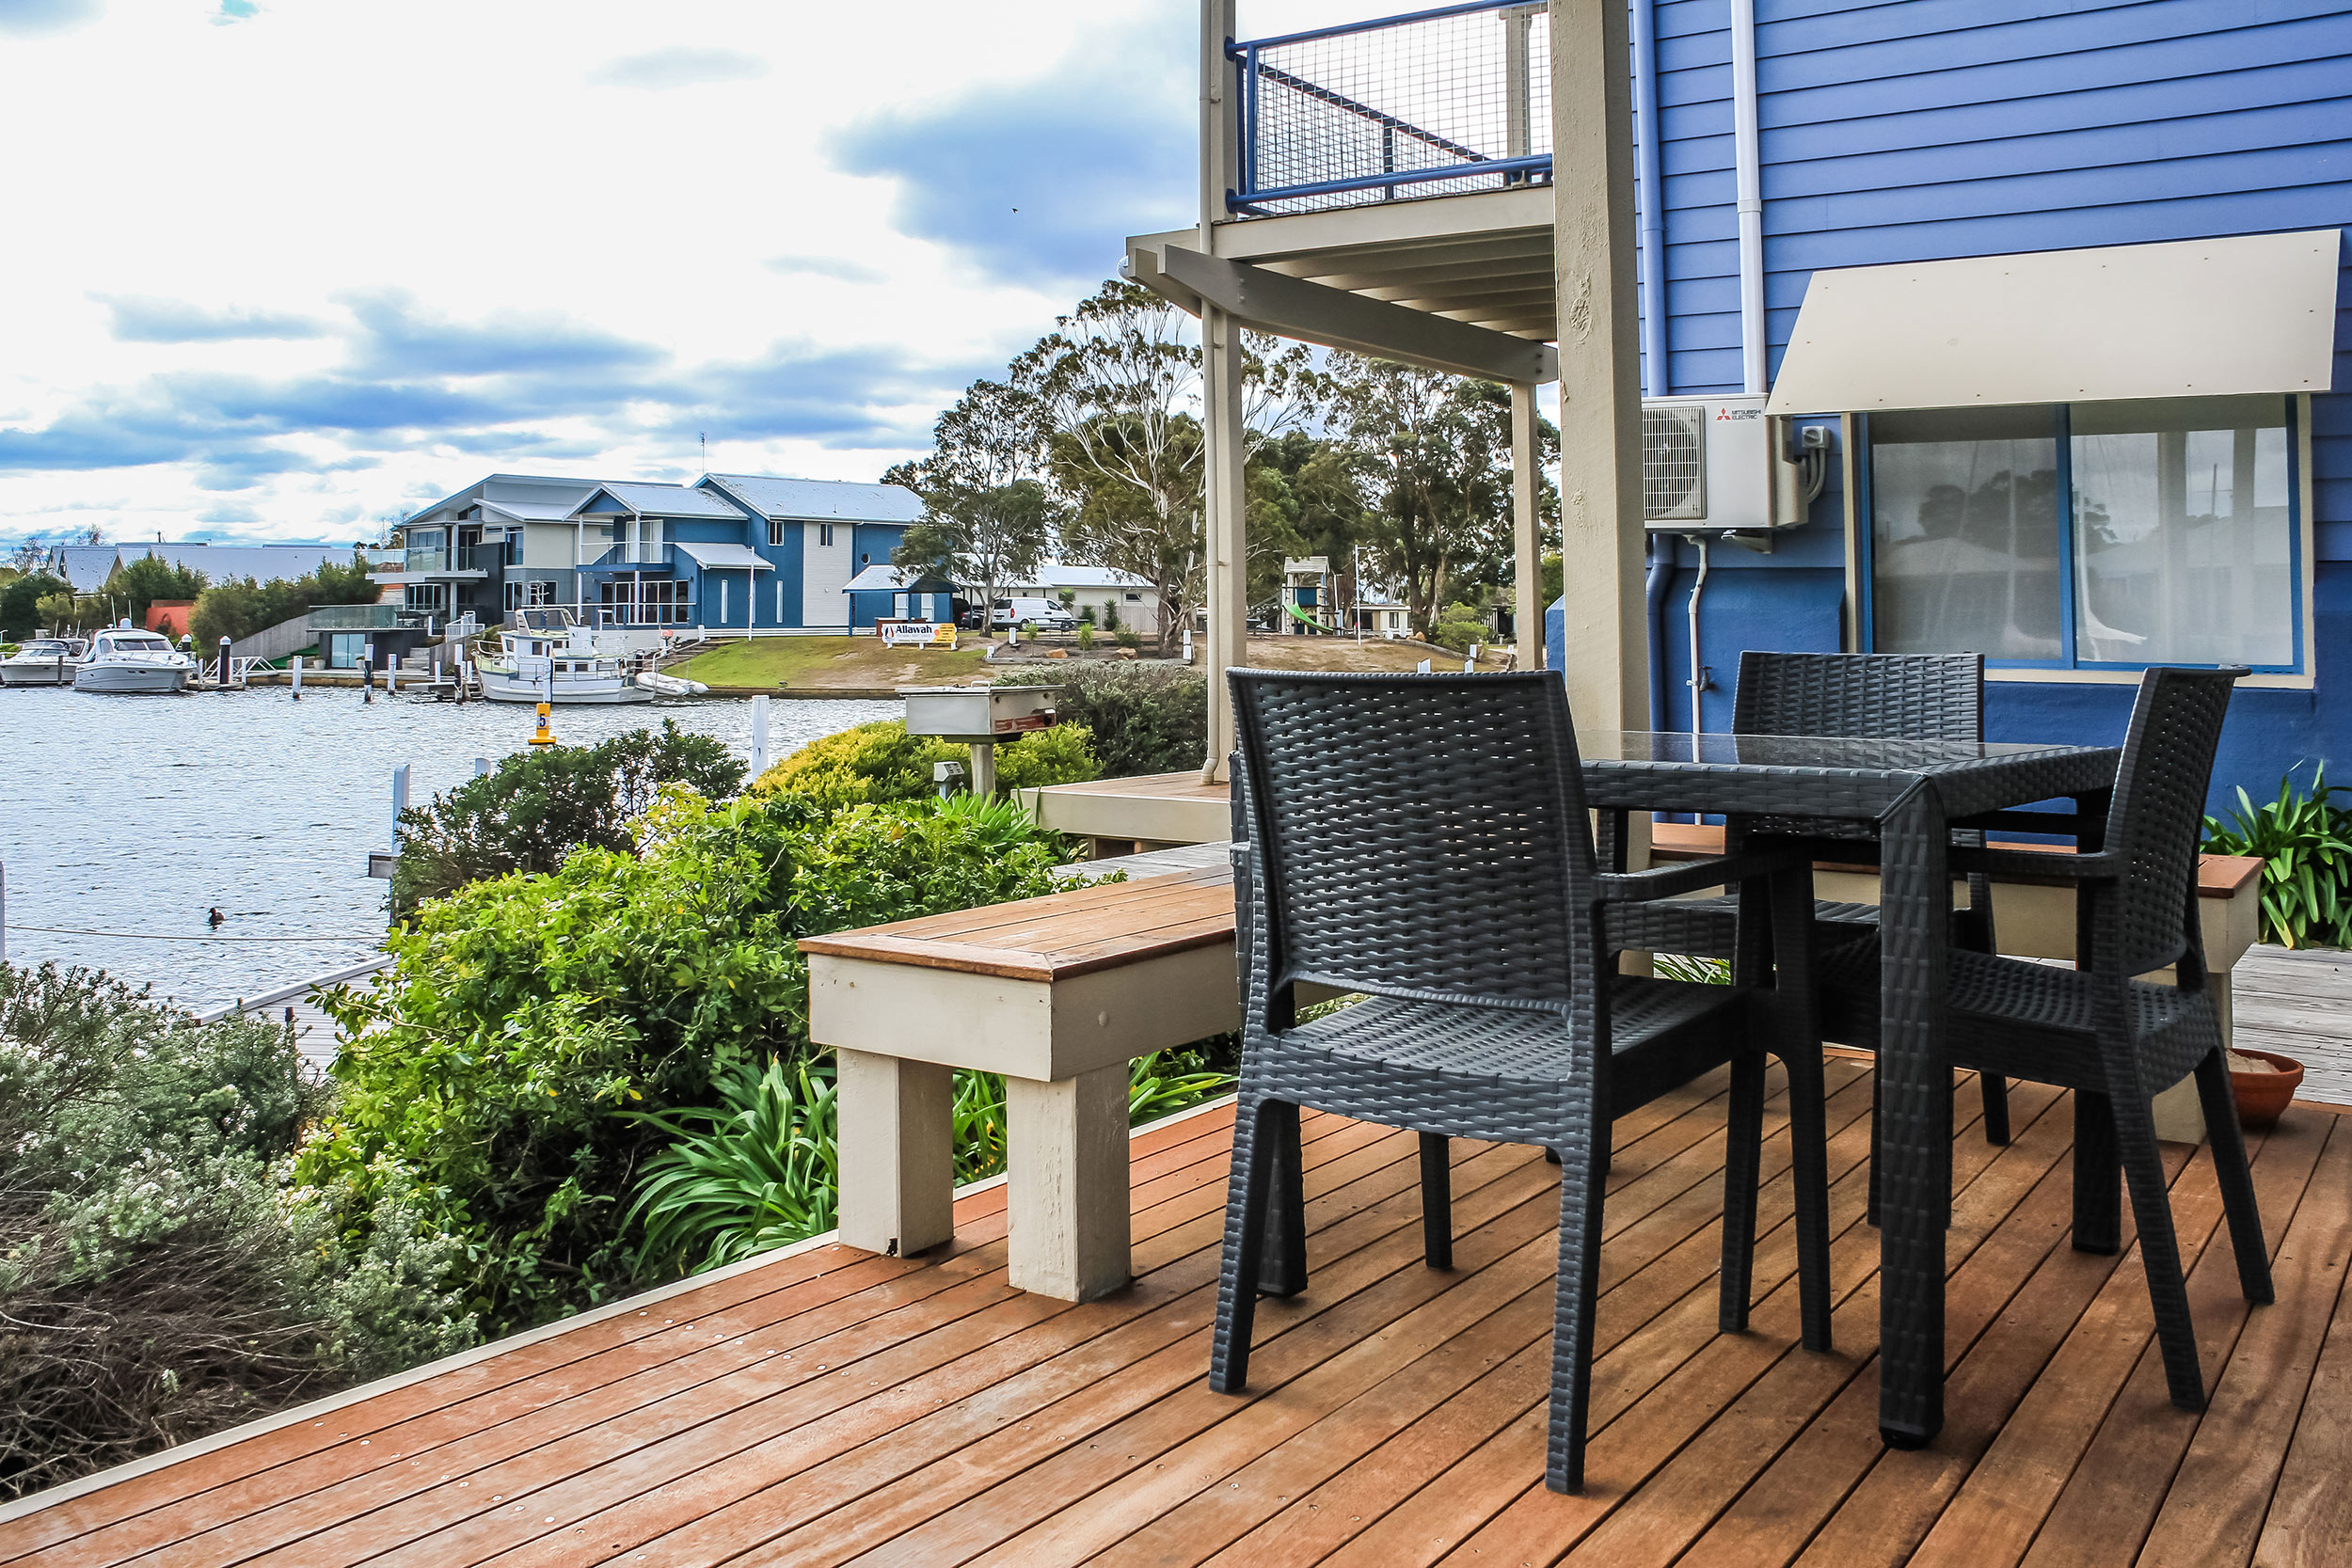 Name : Captains Cove Resort – Paynesville, VIC